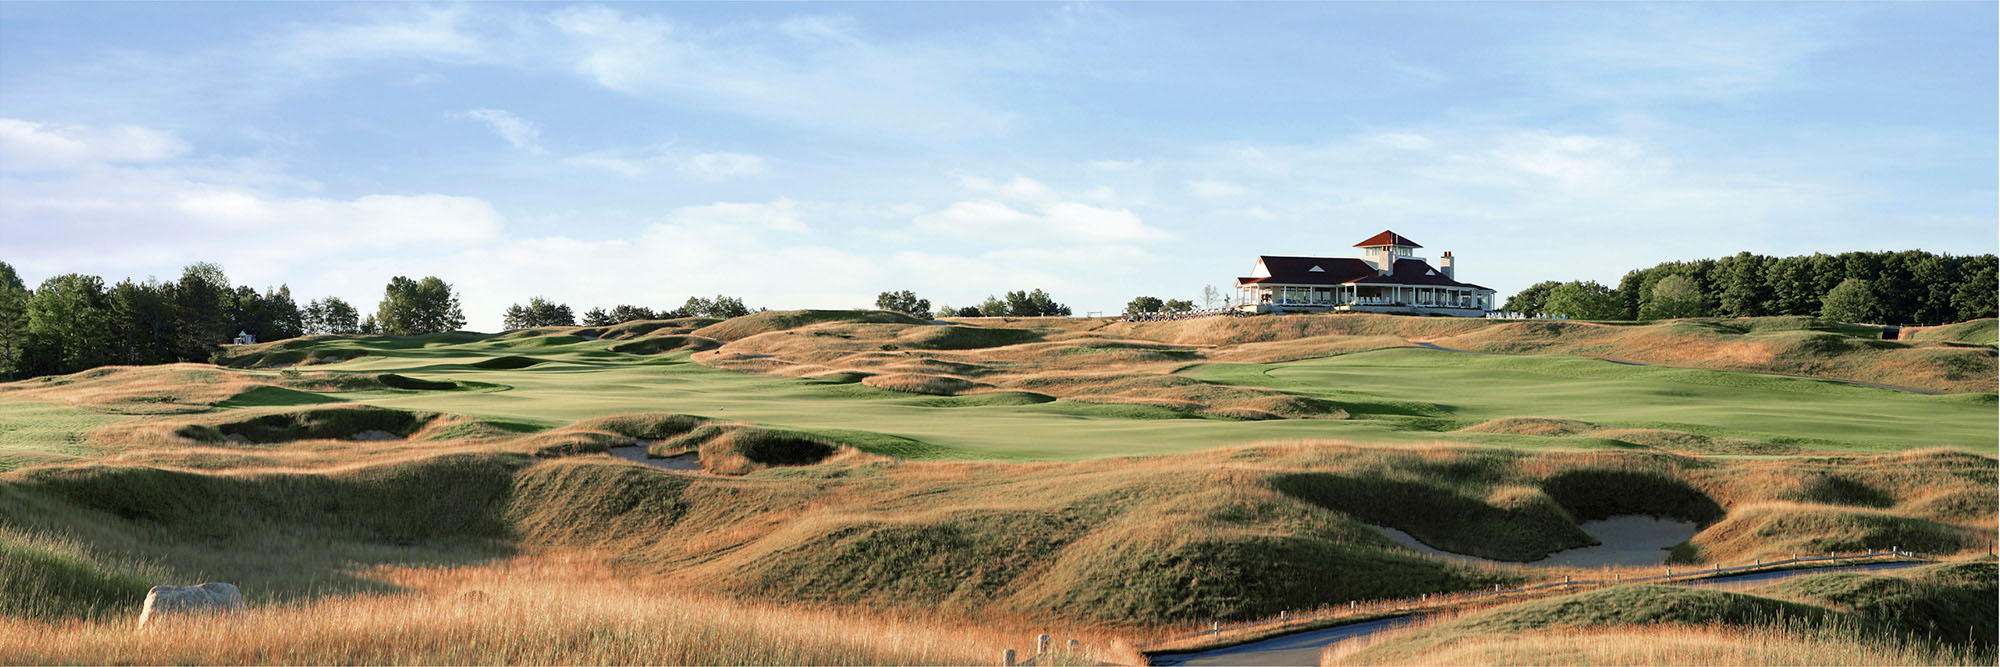 Golf Course Image - Arcadia Bluffs No. 15